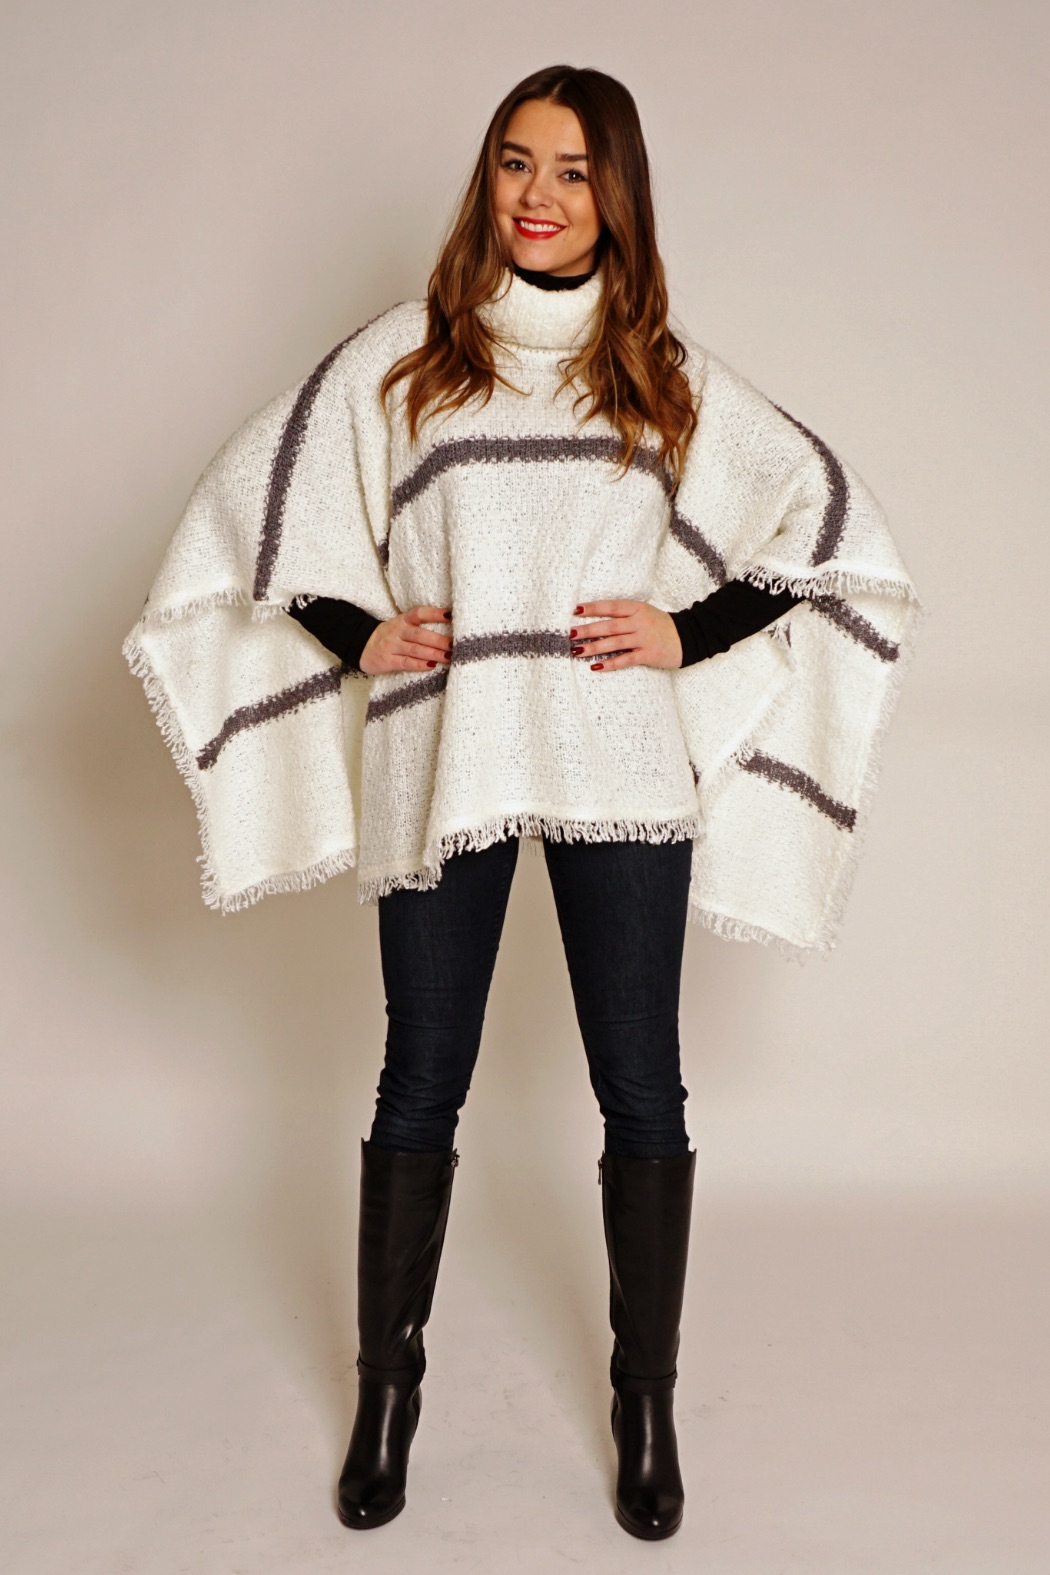 Although ponchos can appear to be an easy item to wear, it's important to choose one that fits your frame. Make sure that it is not too small or to big but that it fits your frame — otherwise you will drown in it.  Necklines such as cowl neck, turtleneck, V-neck, scoop neck, crew neck, and boat neck are great as they frame your face and upper body. While boat necks and crew necks tend to make the chest and shoulders look wider, they are perfect if you have narrow shoulders or a small bust. V-necks are especially good for women with broad shoulders or a large bust, as they have a slimming effect. If you have a longer neck, go for a turtleneck that has a shortening effect through the neck and face.  If you want to elongate your frame, opt for a ponchos that falls no lower than just above your knee. Petite ladies should be aware of long ponchos as they will overwhelm your shorter stature.The fine knit triangle-shaped poncho, in a shorter length, is perfect for smaller frames.